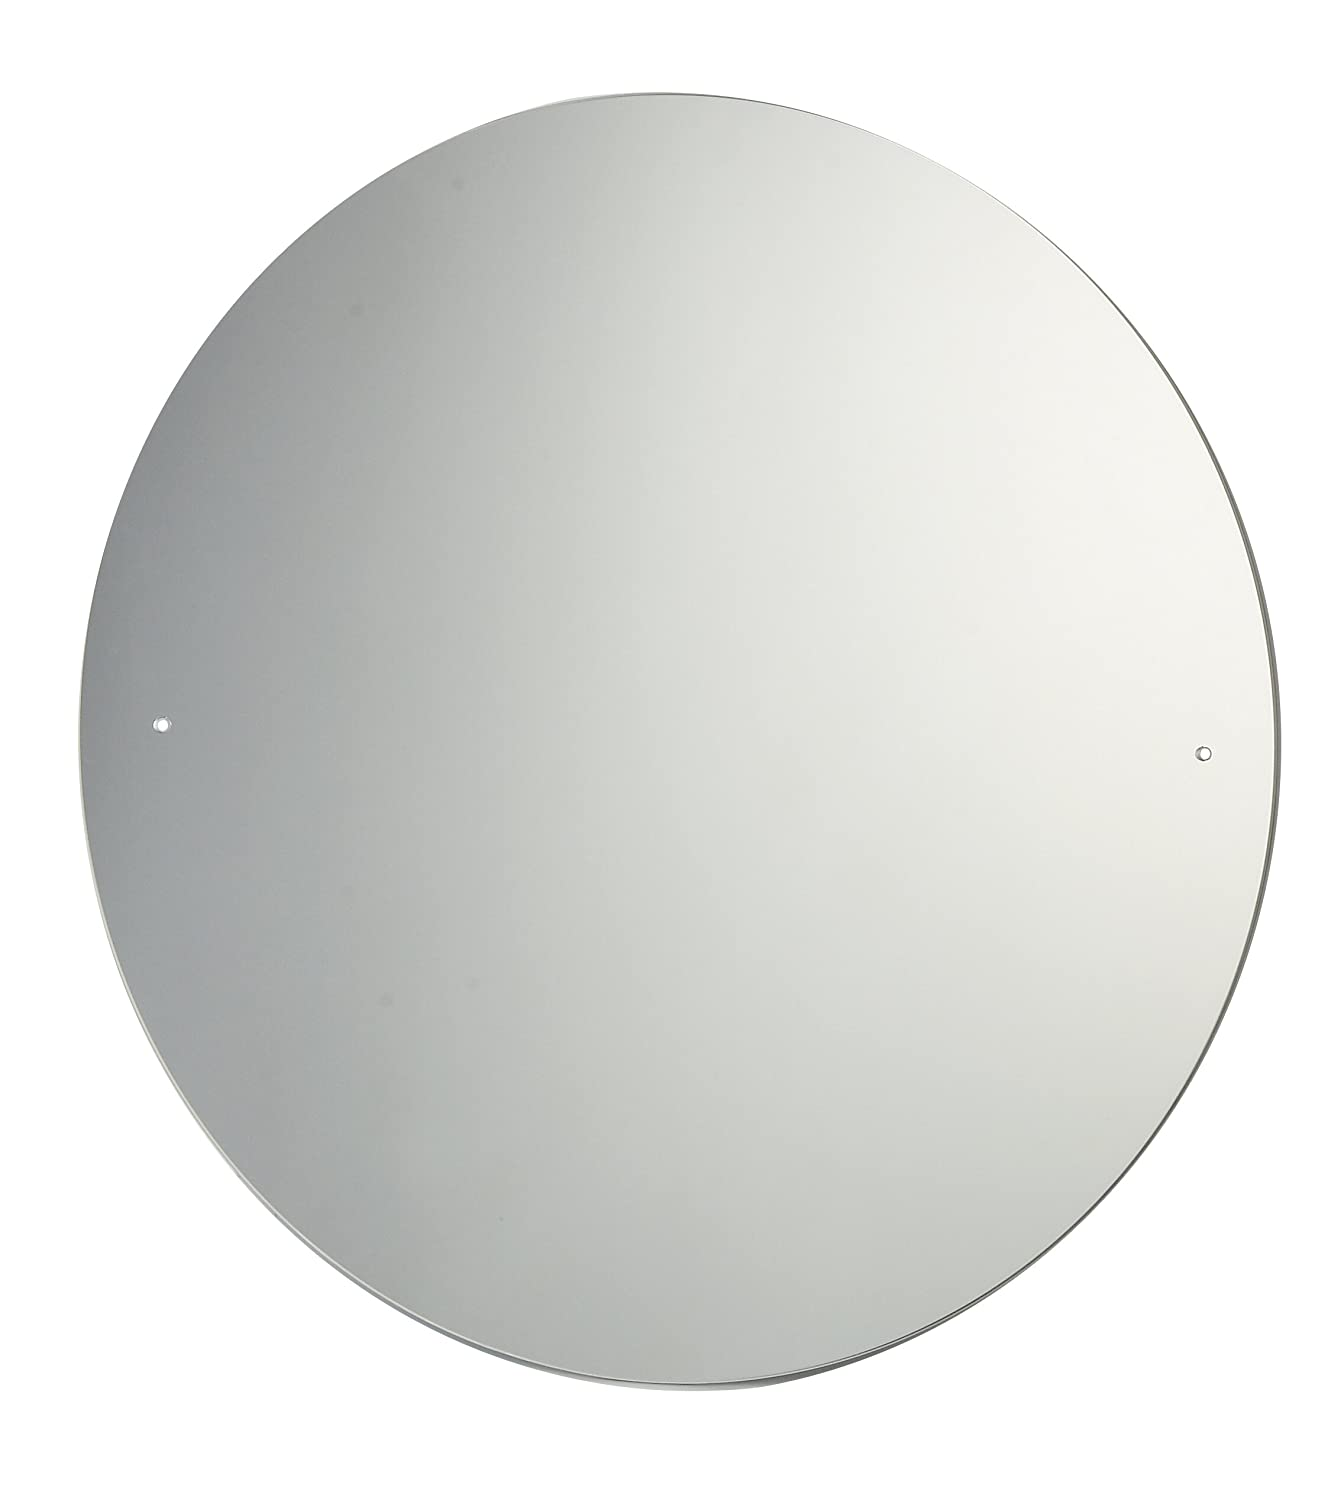 40cm Diameter Circular Bathroom Mirror with Drilled Holes & Chrome Cap Wall Hanging Fixing Kit